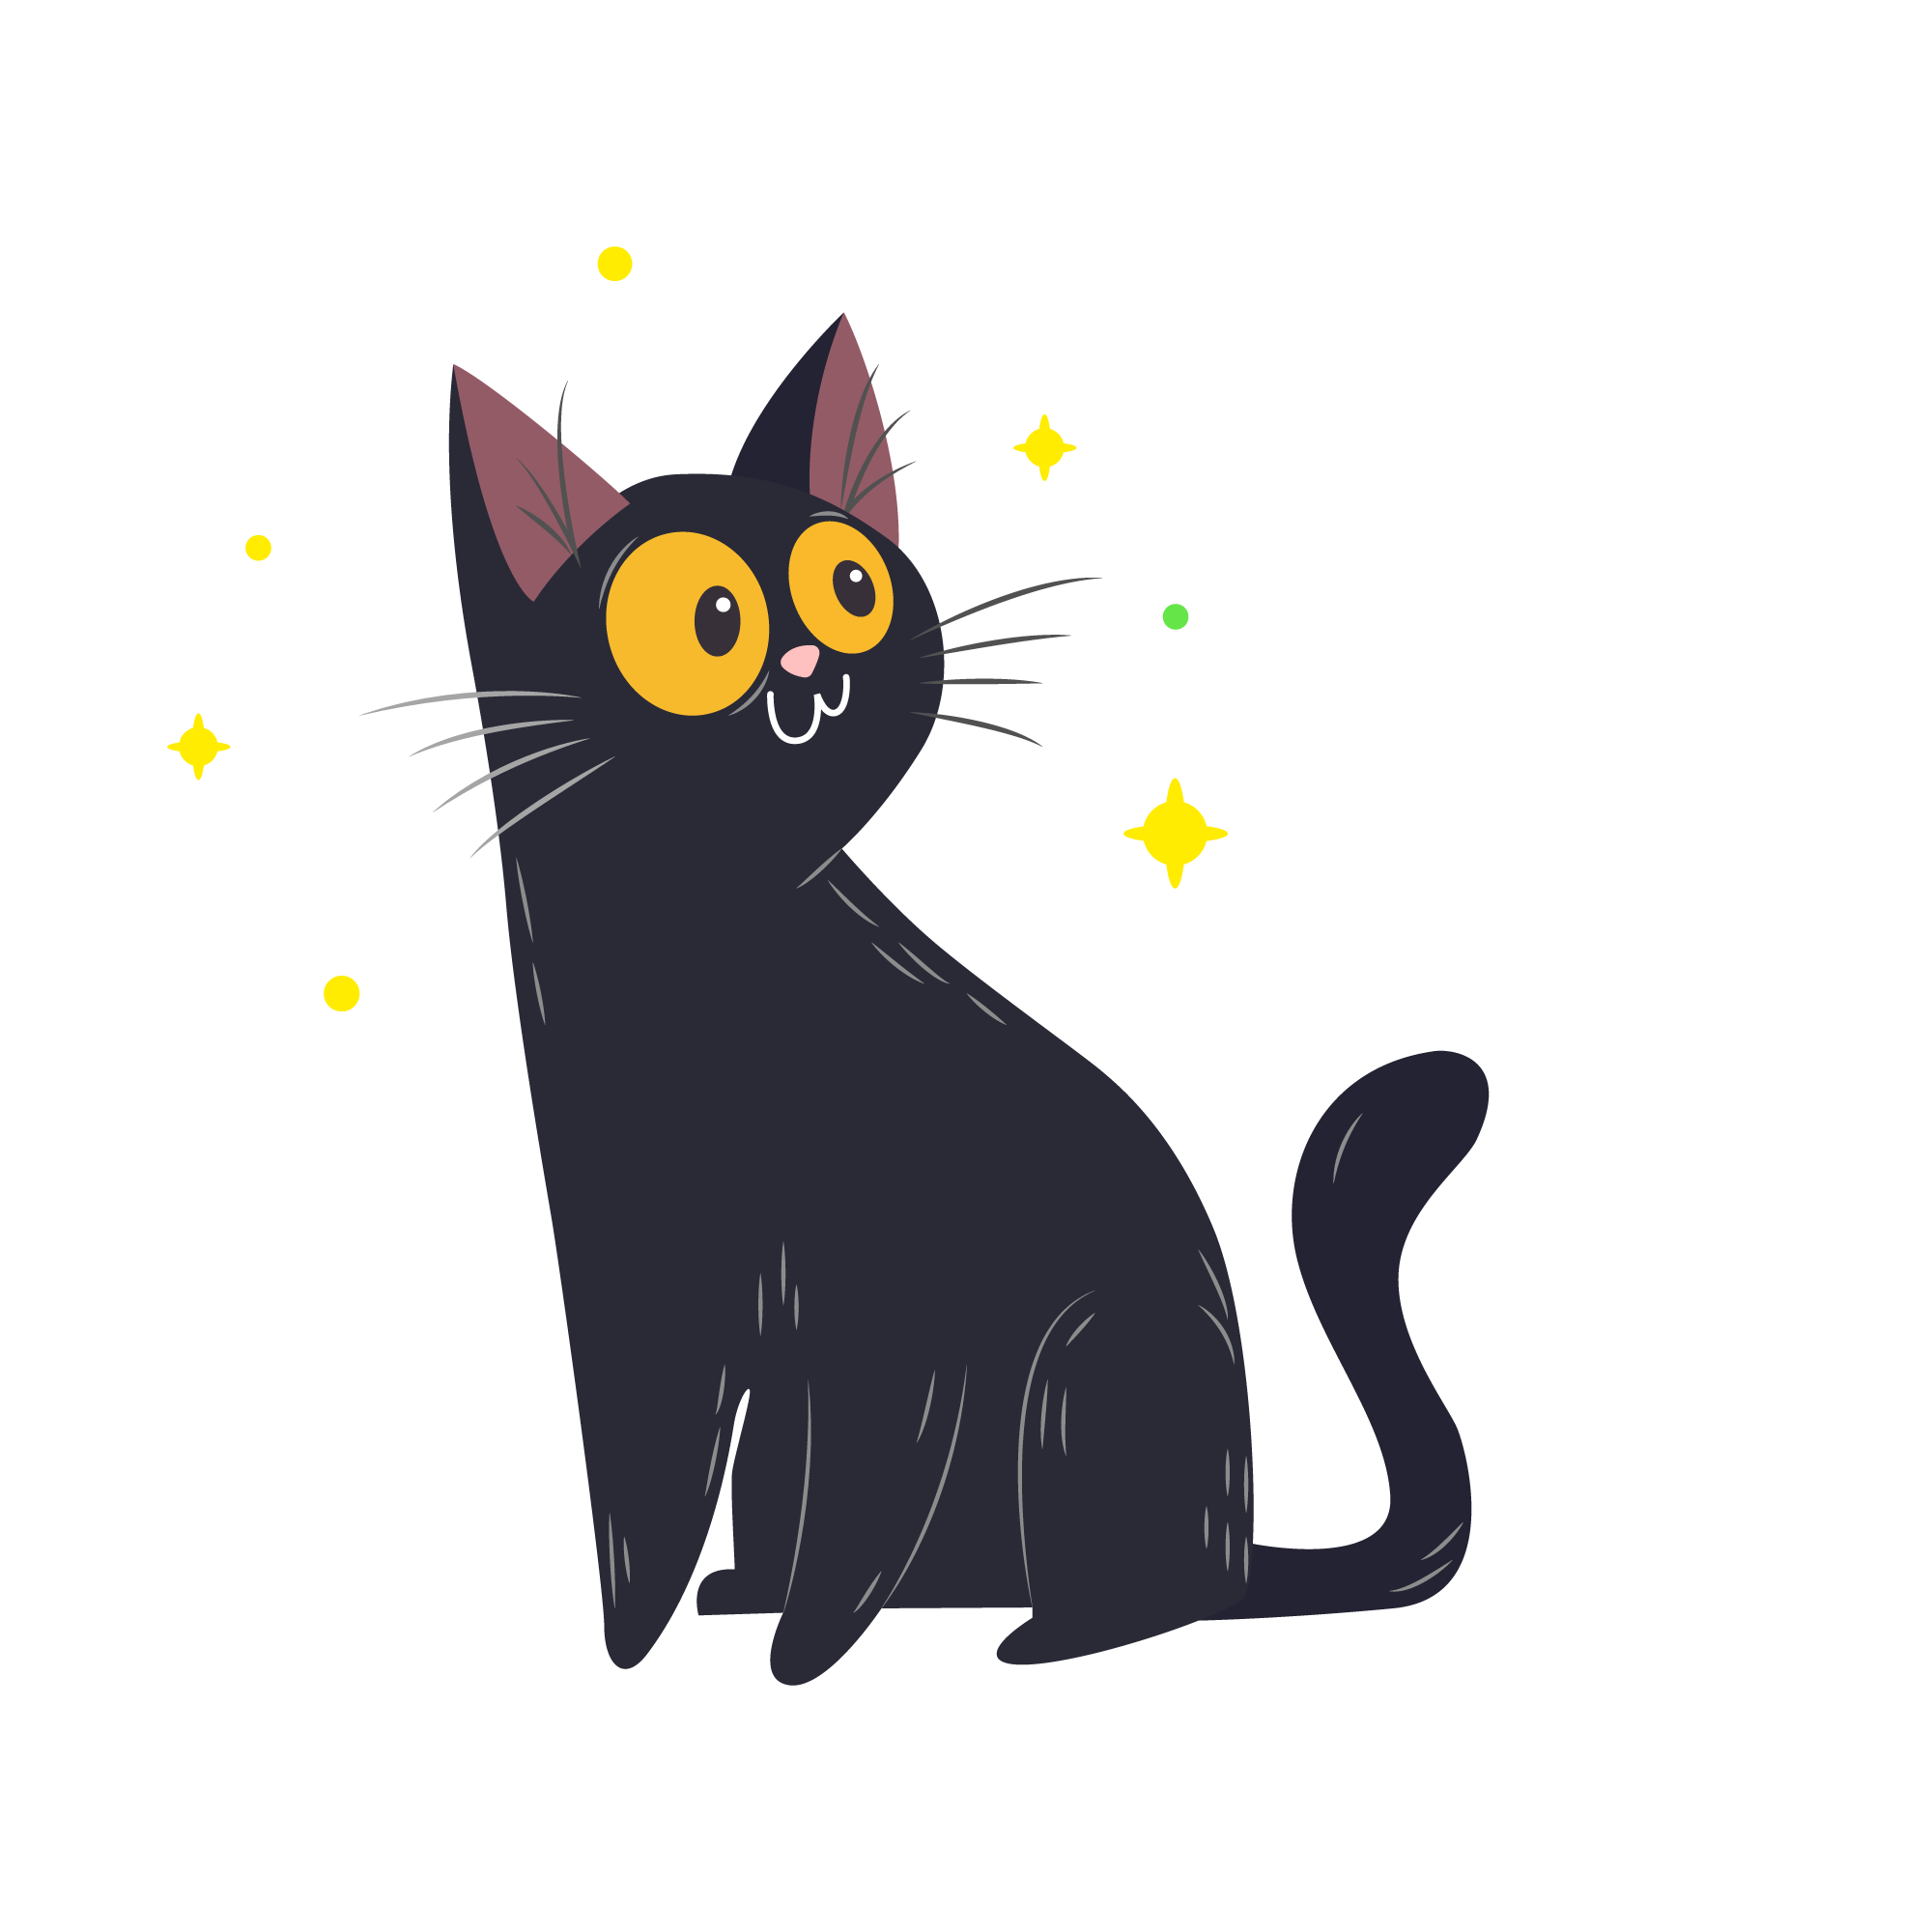 Free SVG File for Download - Cat